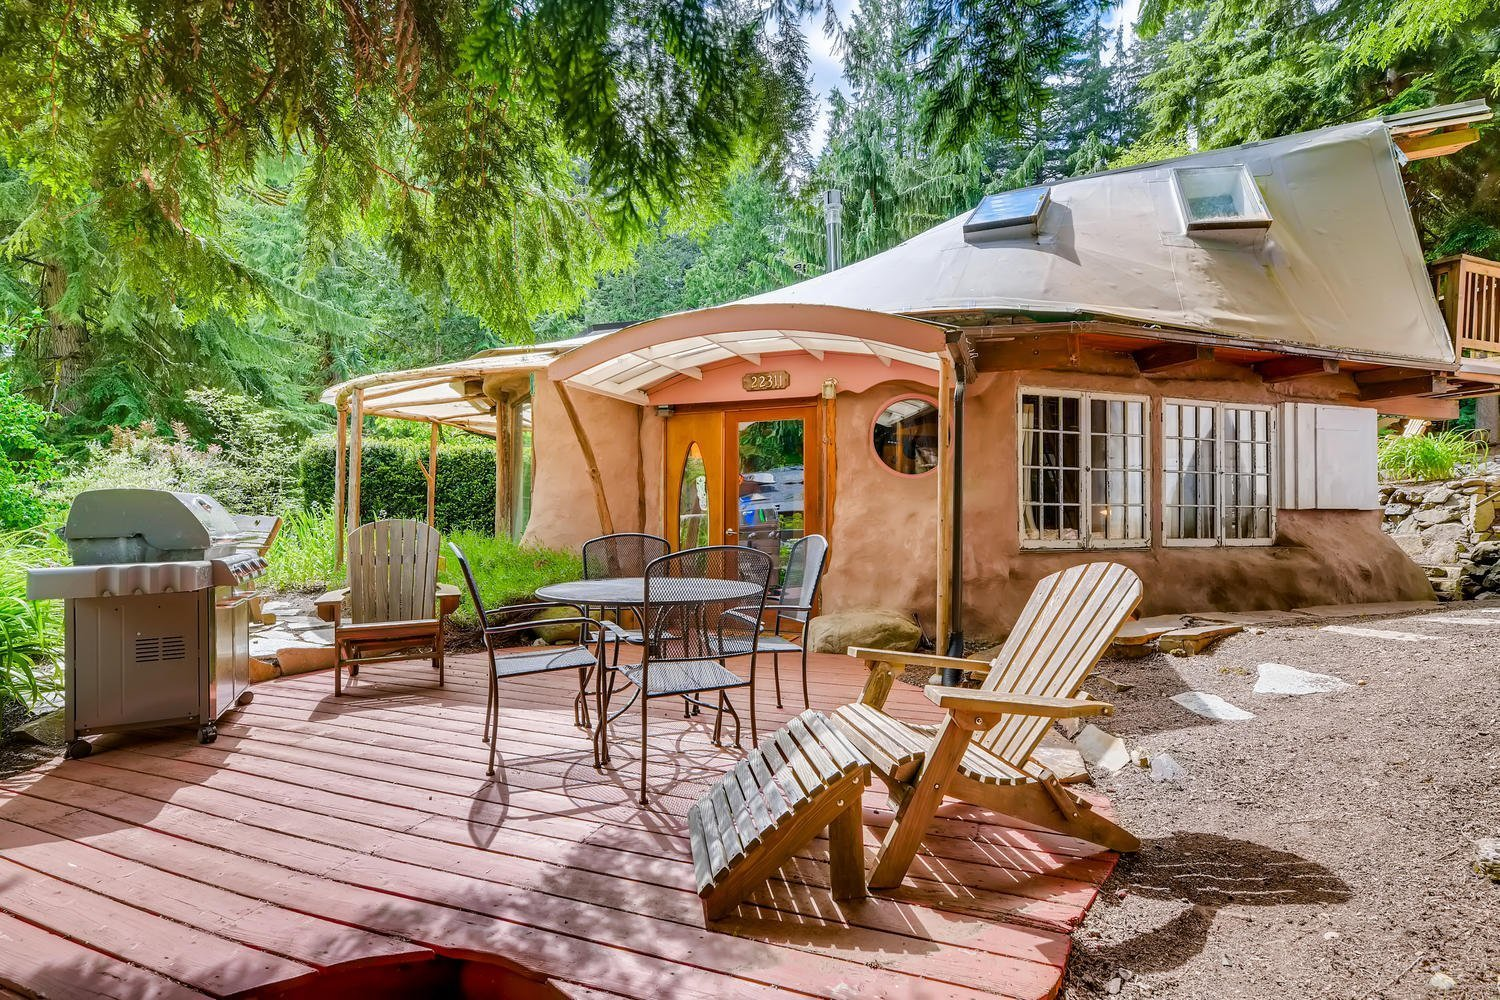 Great Value! One of a Kind, 2-Home Sustainable Retreat in Sharingwood Cohousing Community near Seattle!